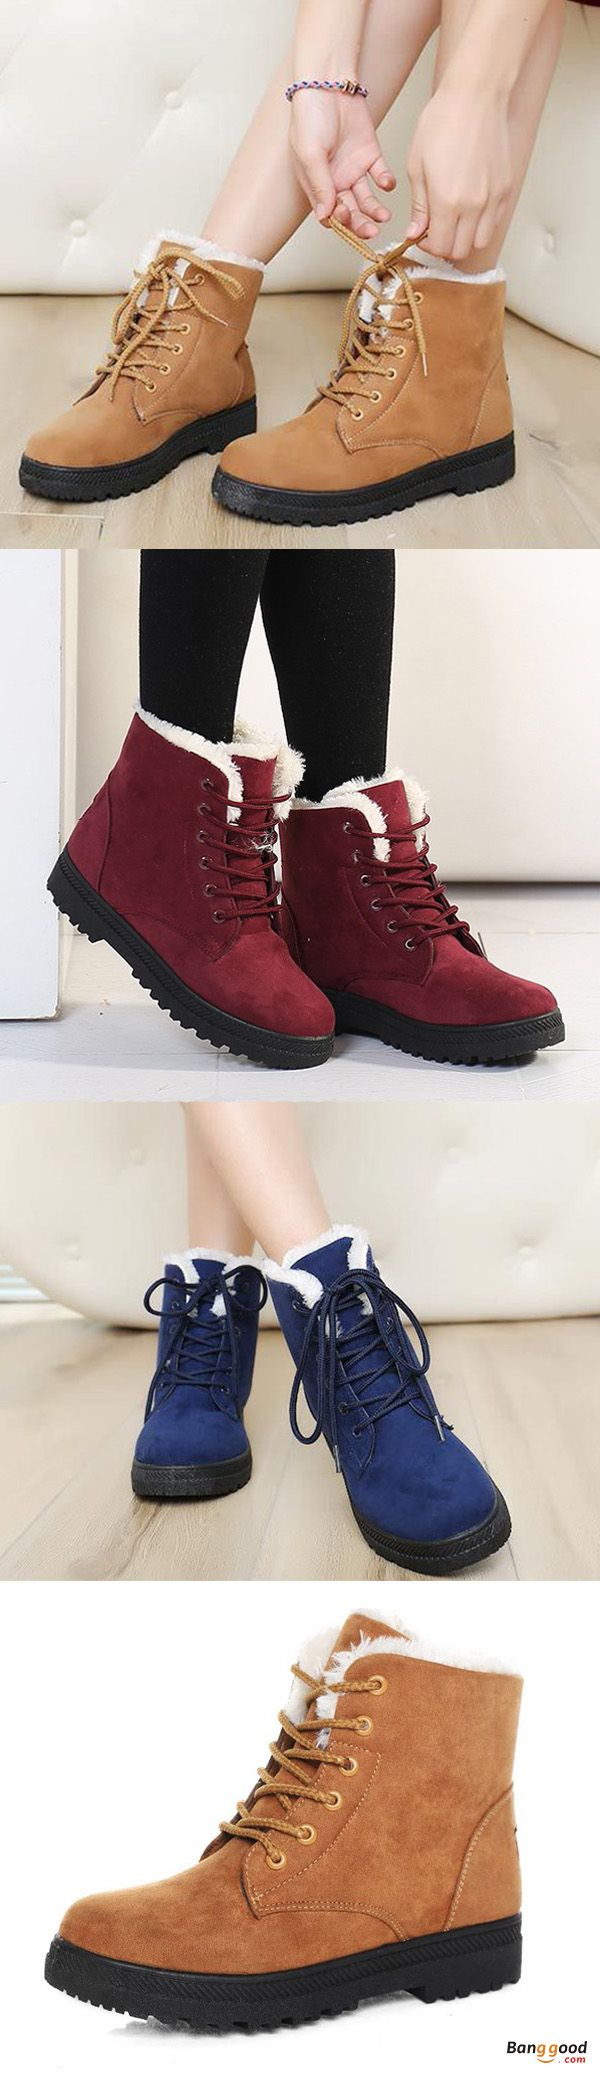 US$28.35 + Free shipping. US Size 5-12 Women Winter Keep Warm Flat Plush Snow Boots Ankle Short Boots.